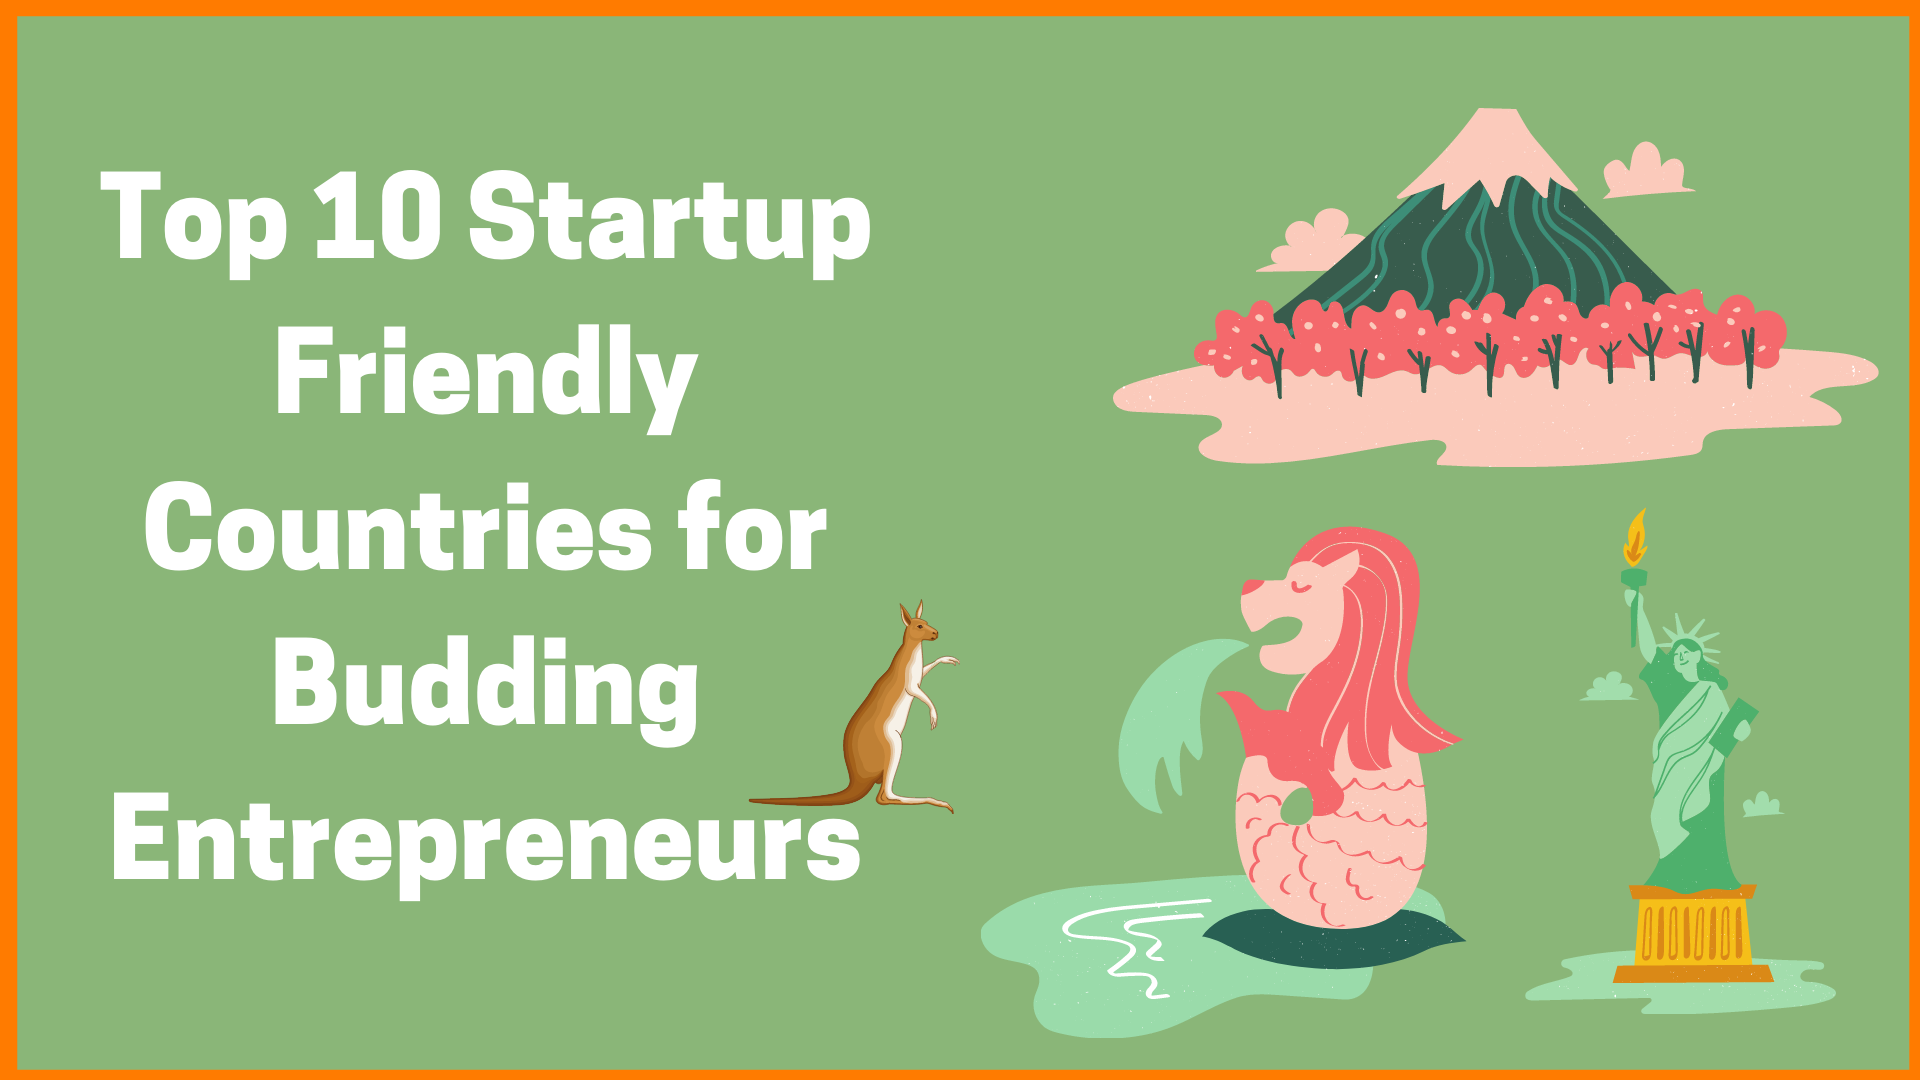 Top 10 Startup Friendly Countries for Budding Entrepreneurs